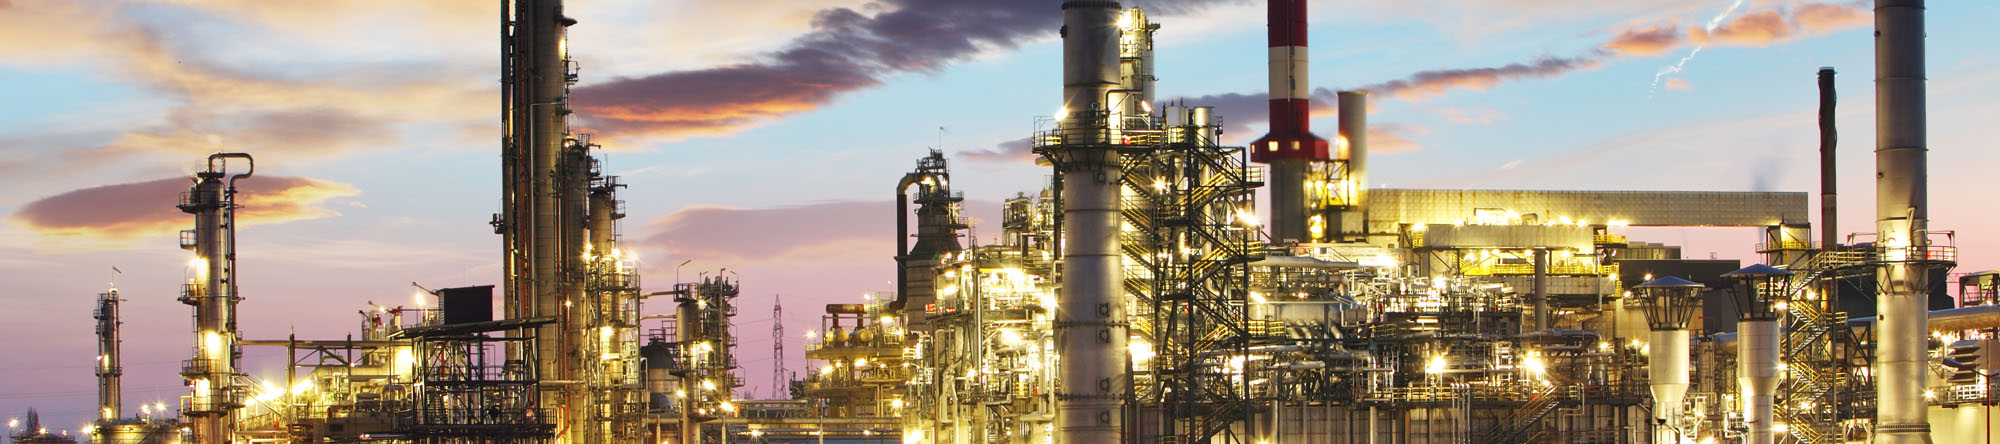 Oil and gas industry – refinery at twilight – factory